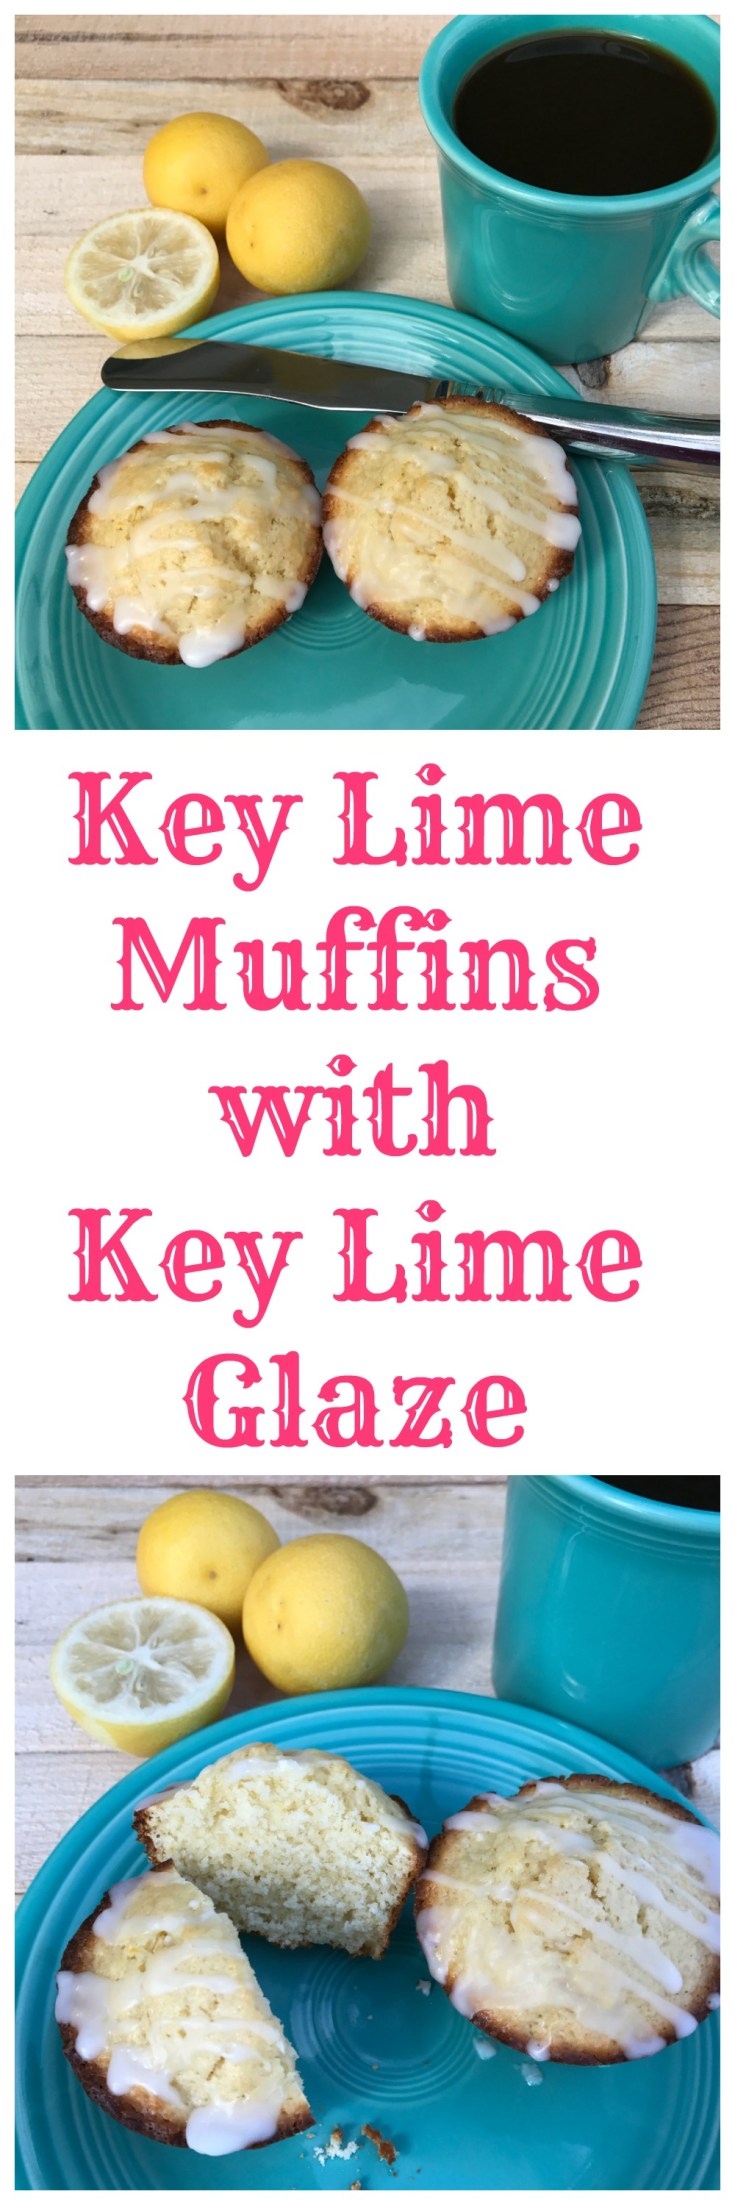 Key lime muffins with Key lime glaze are the perfect way to start your day.